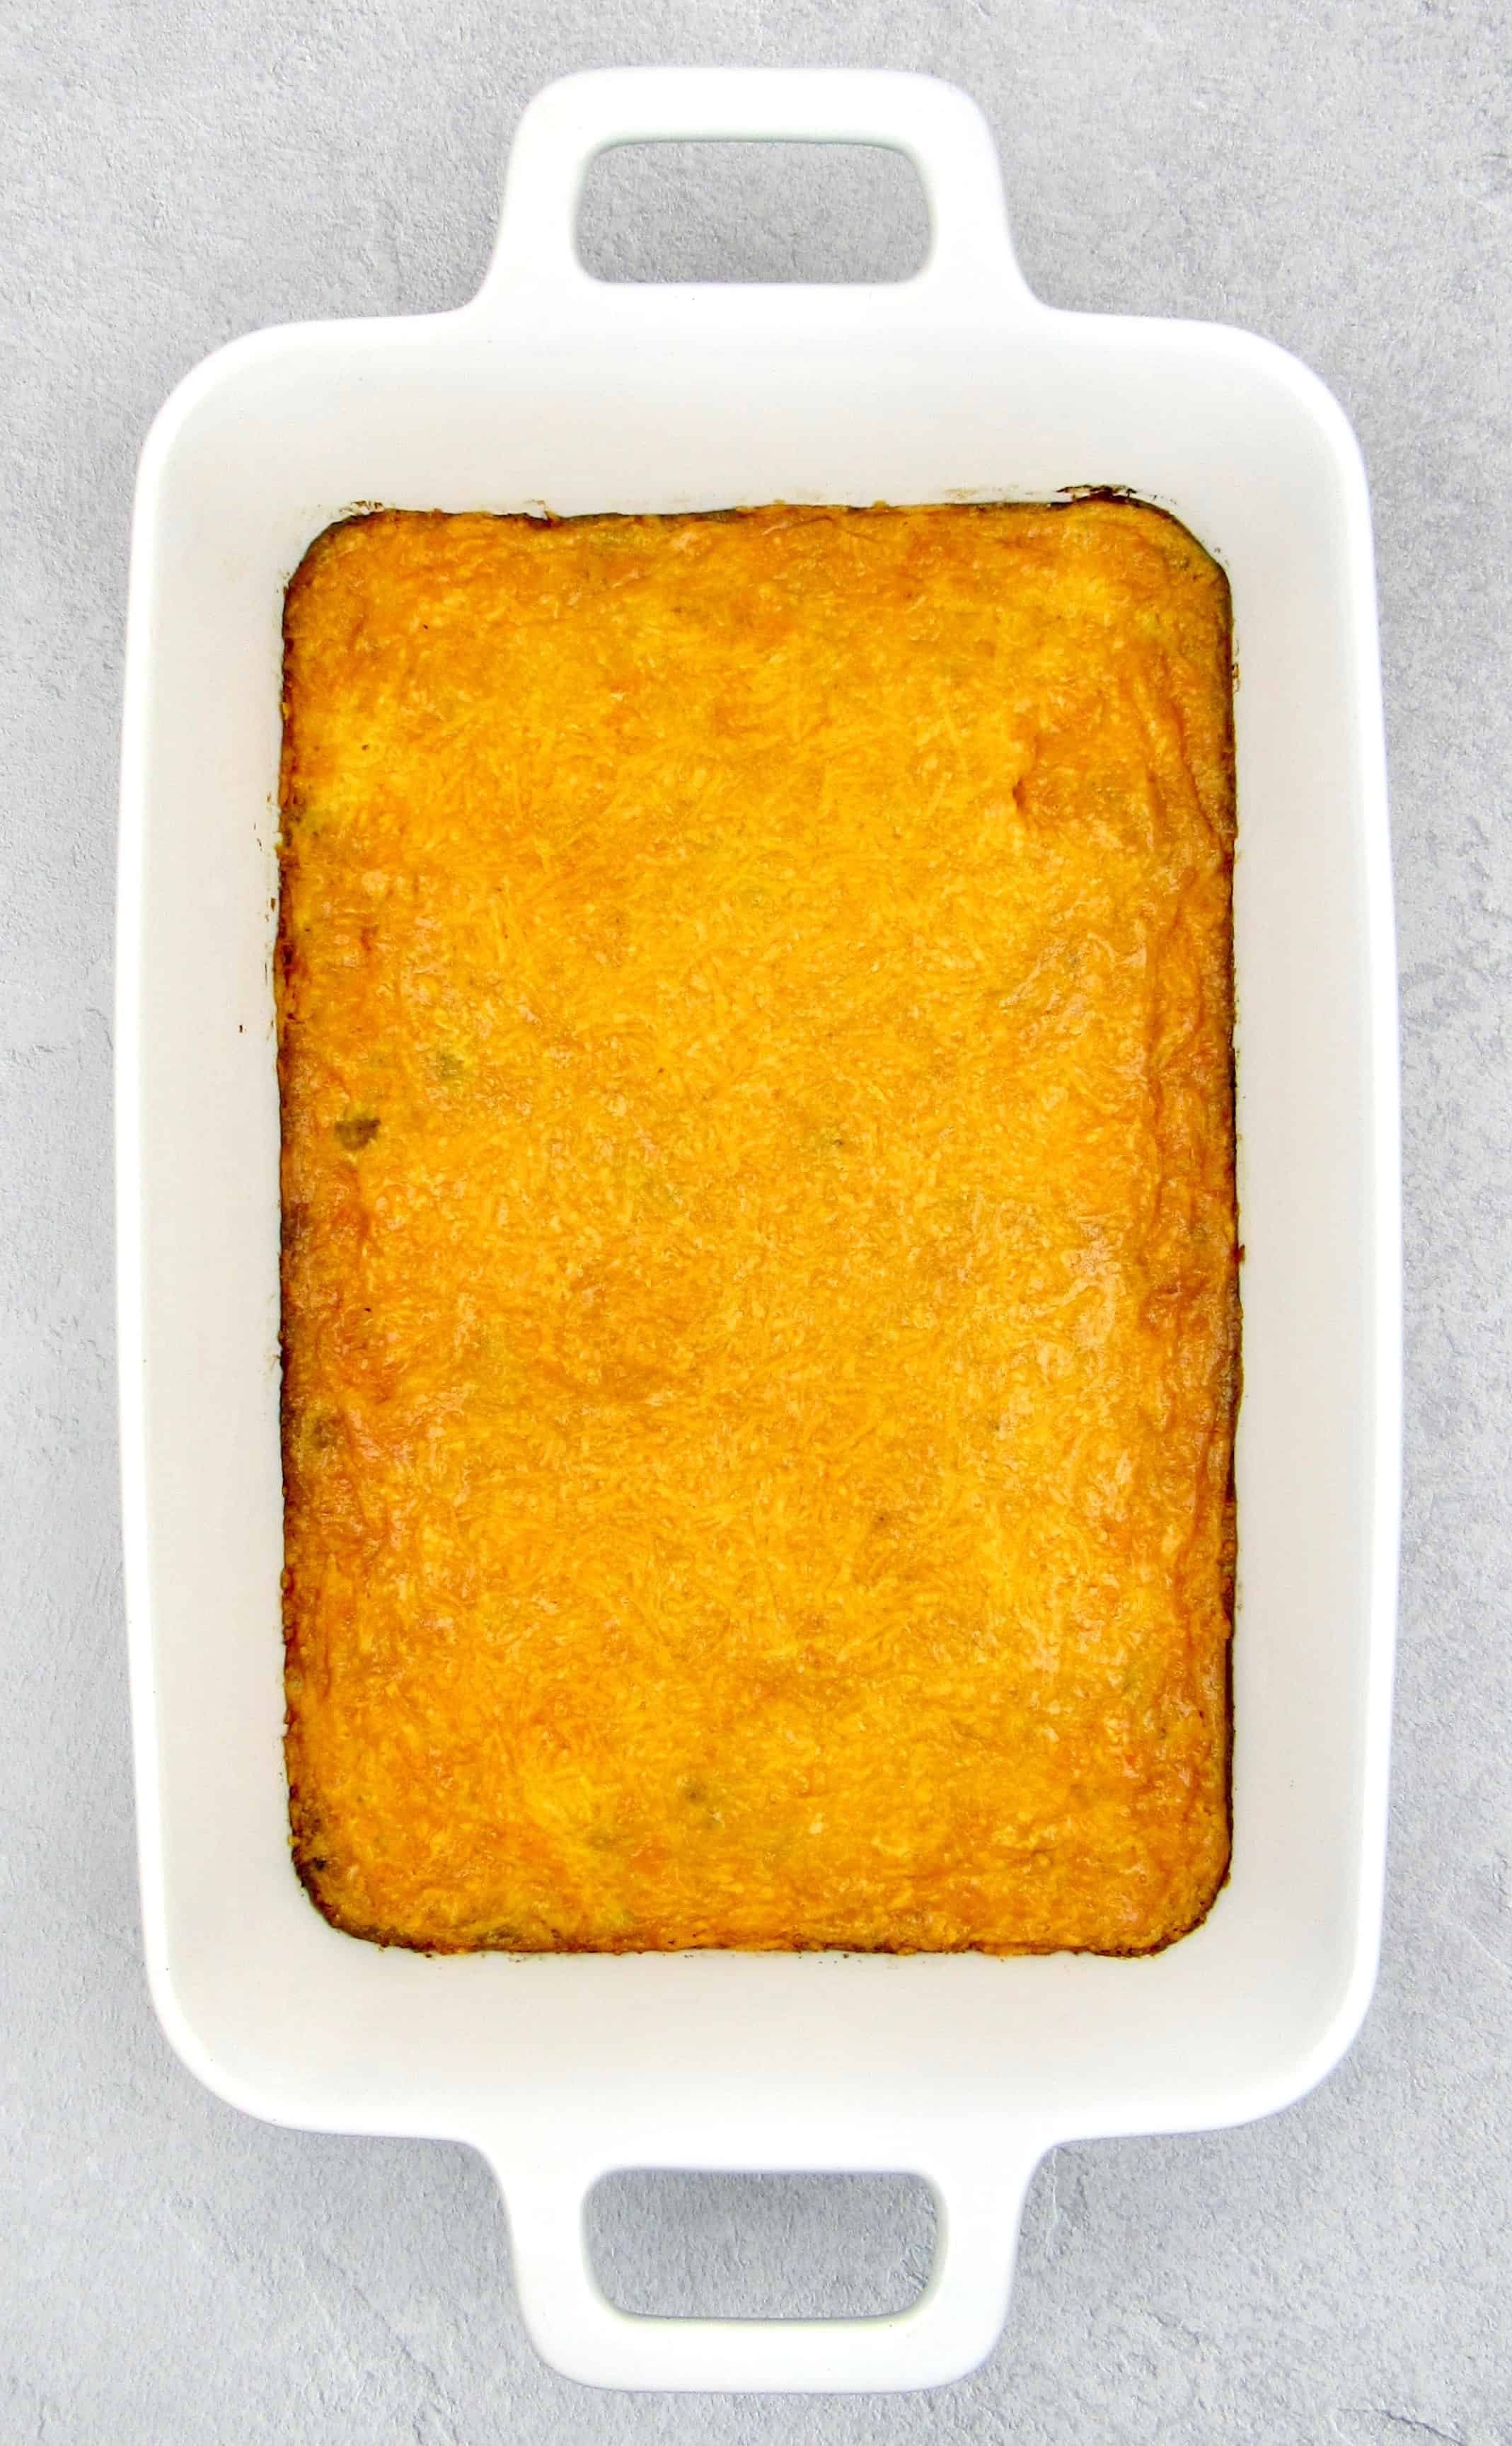 taco casserole baked with cheese on top